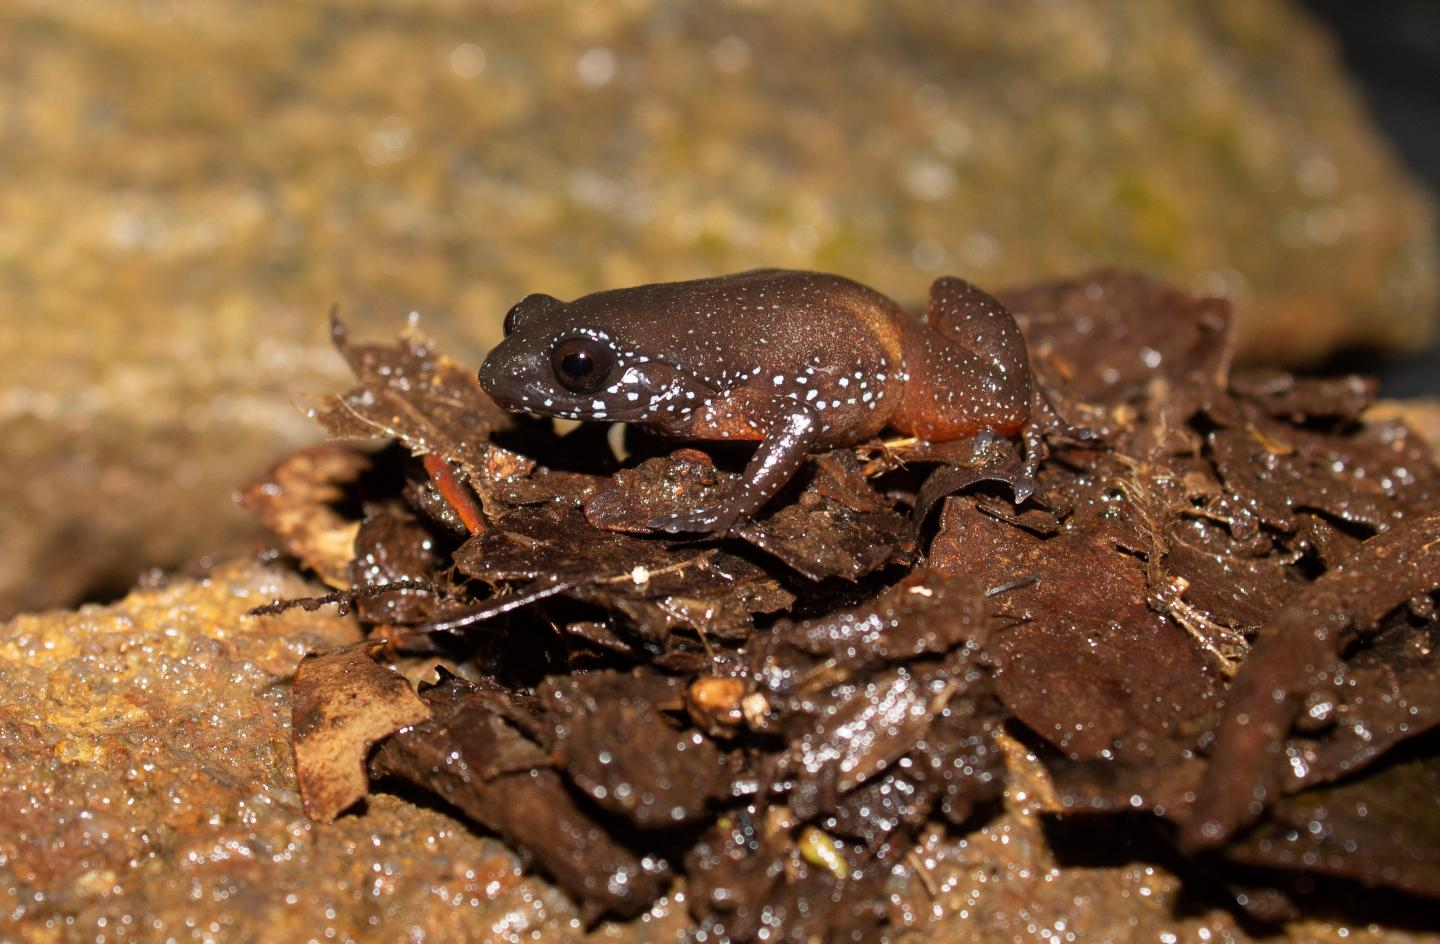 Frog's Unusual Starry Patterning Serves as Effective Camouflage